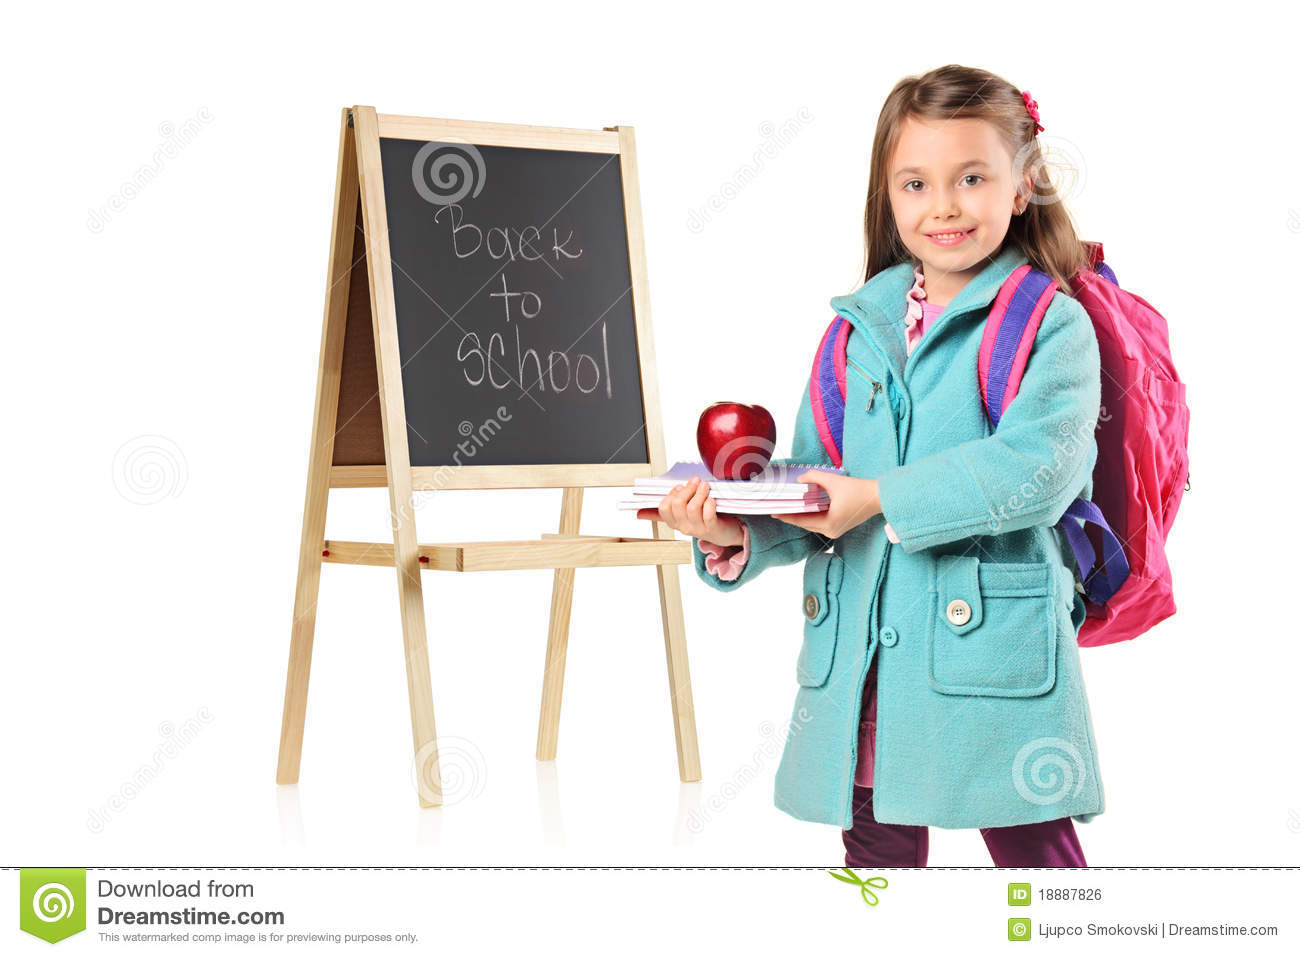 4a61c675de09 A child next to a school board holding books and red apple isolated on white  background